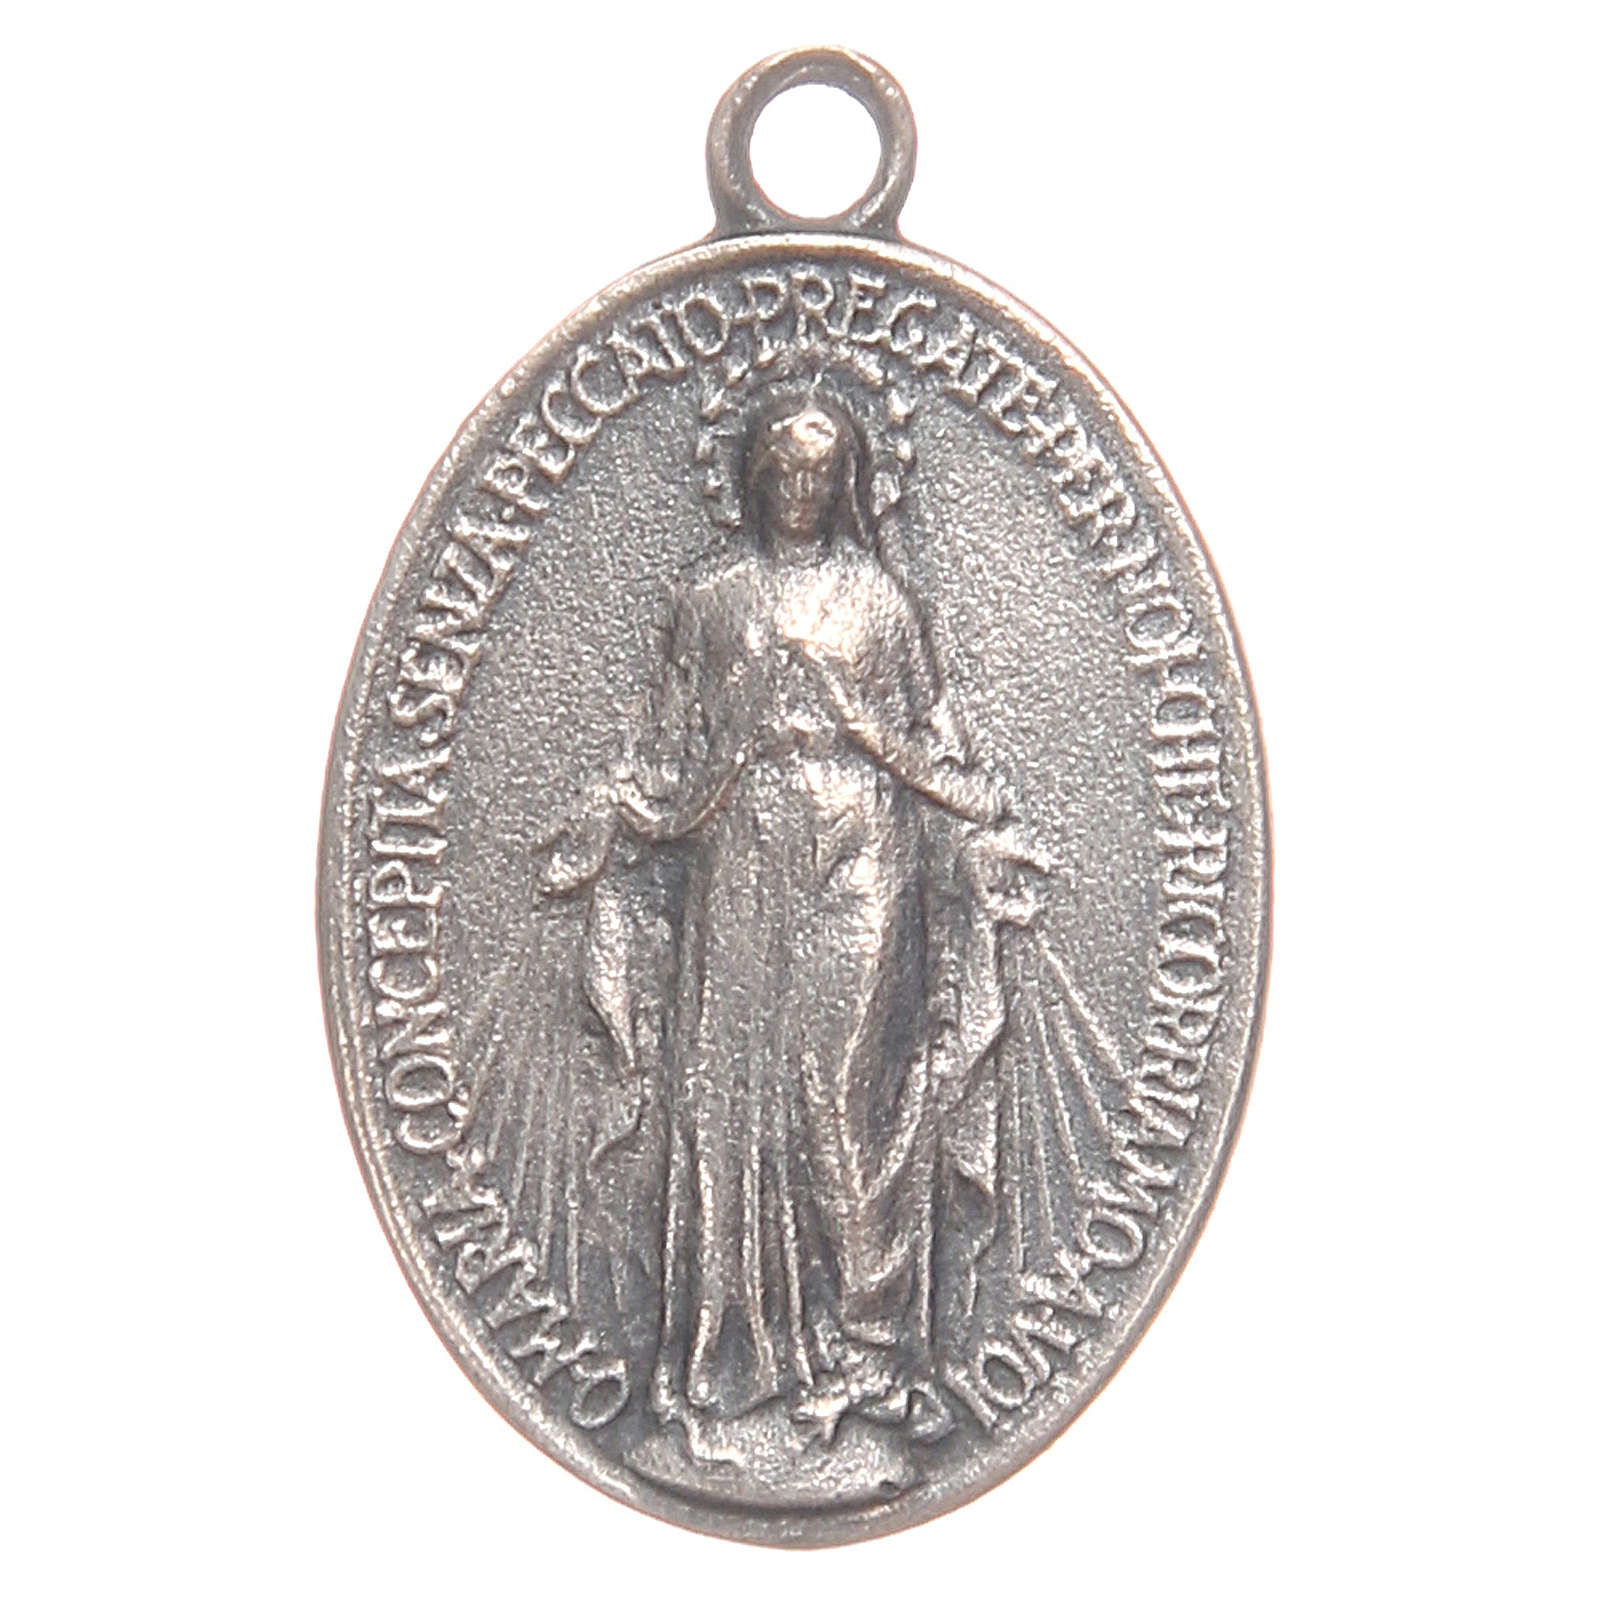 Miraculous Medal measuring 2cm 4